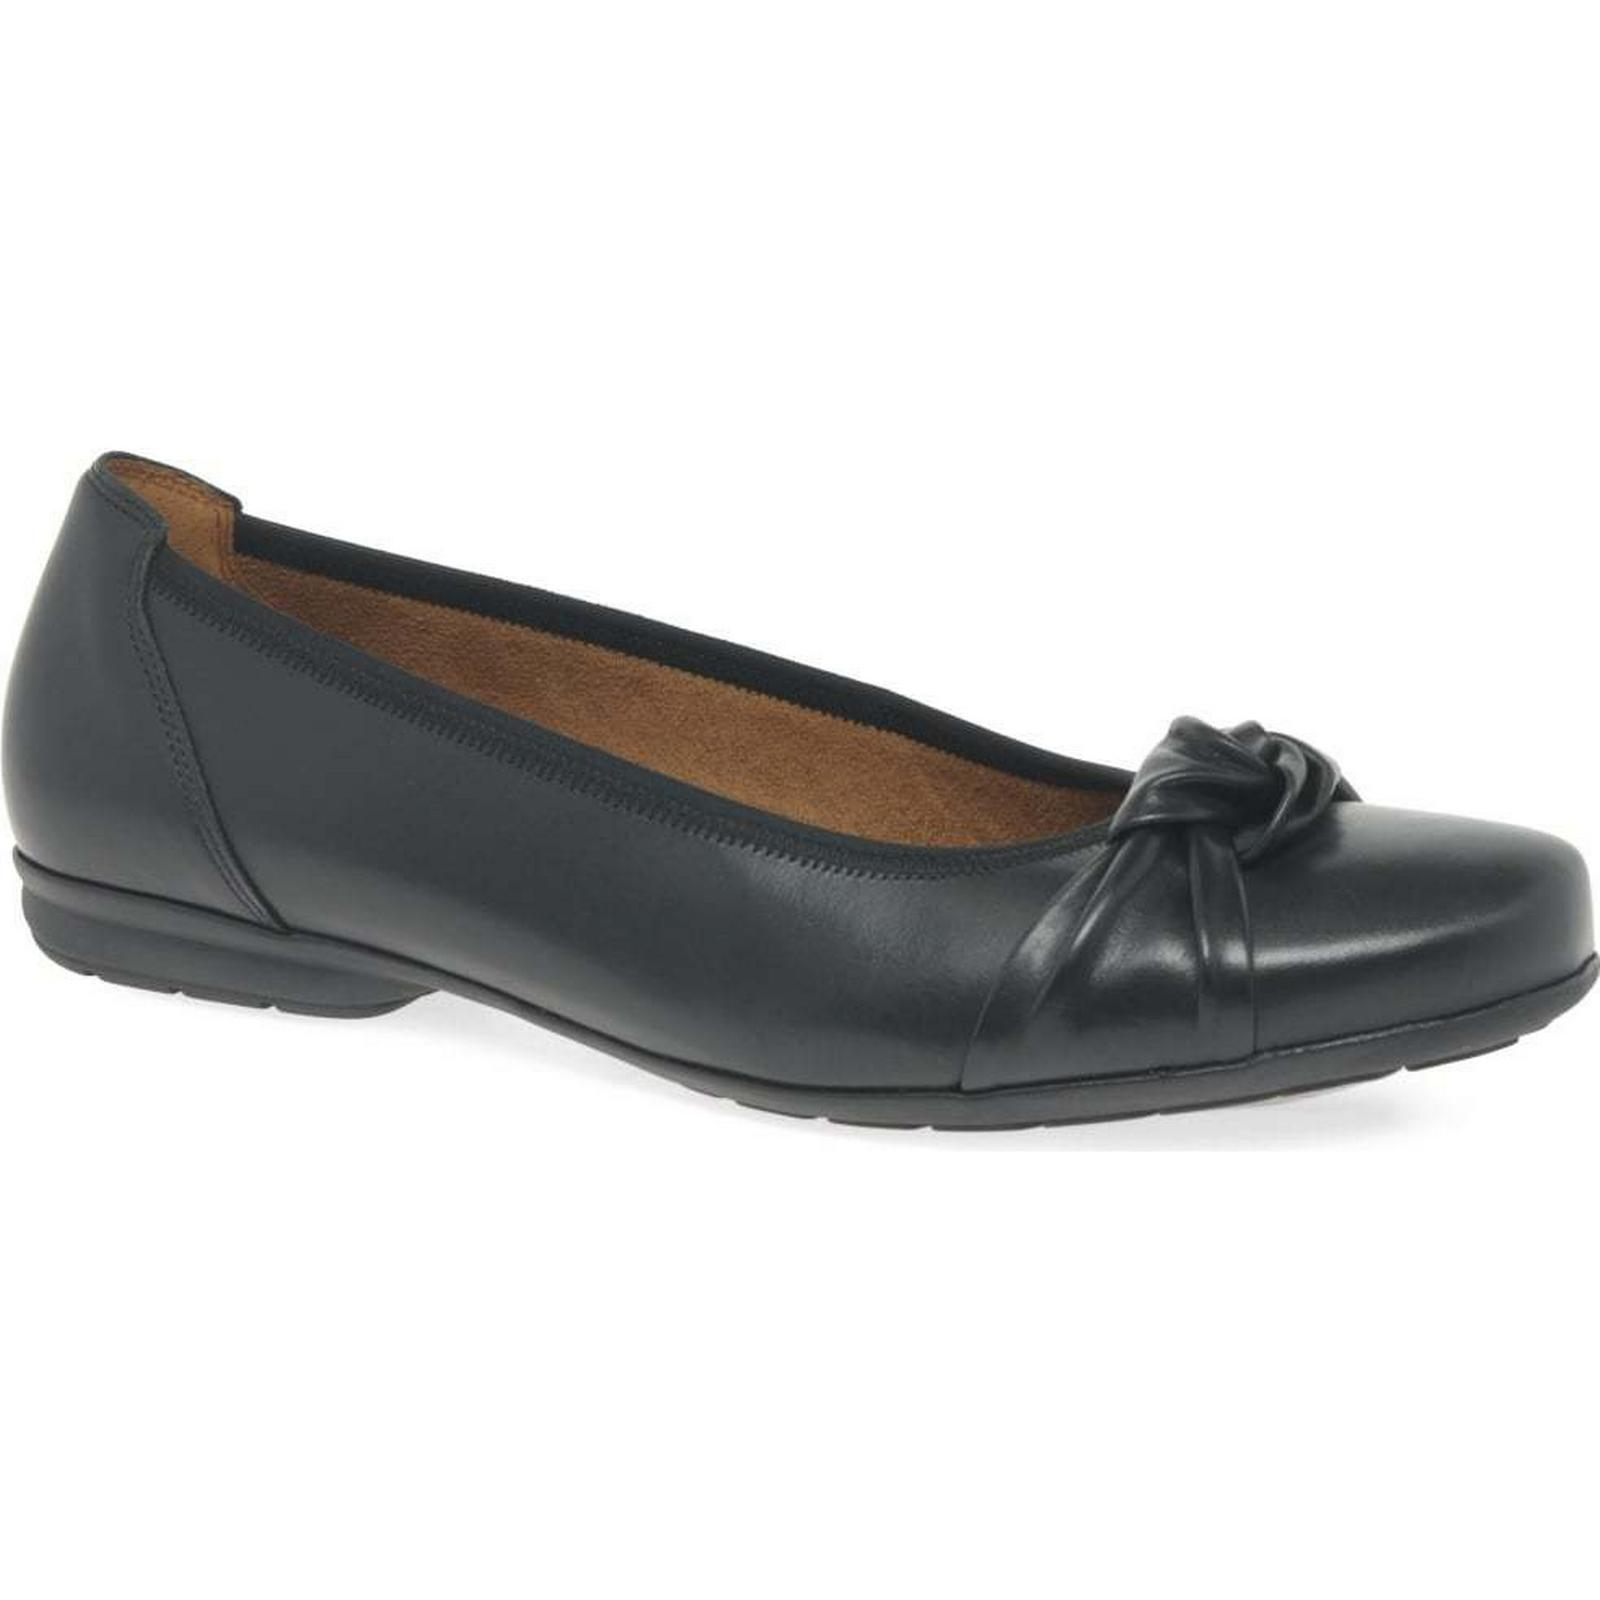 Gabor Ashlene Black, Womens Casual Shoes Colour: Black, Ashlene Size: 6.5 170dd0